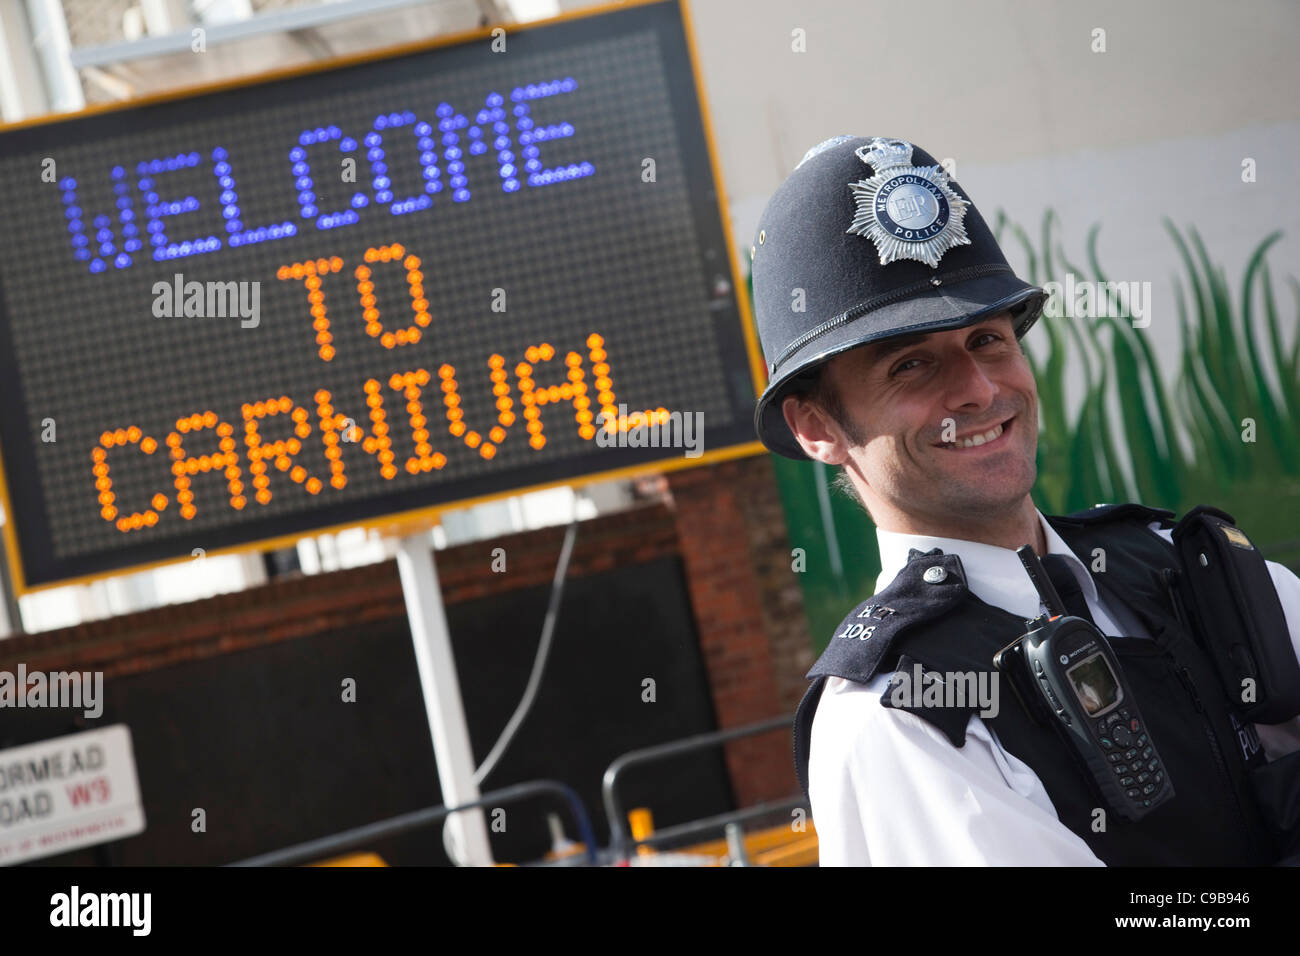 Notting Hill Carnival, Children's Day, friendly policeman Stock Photo